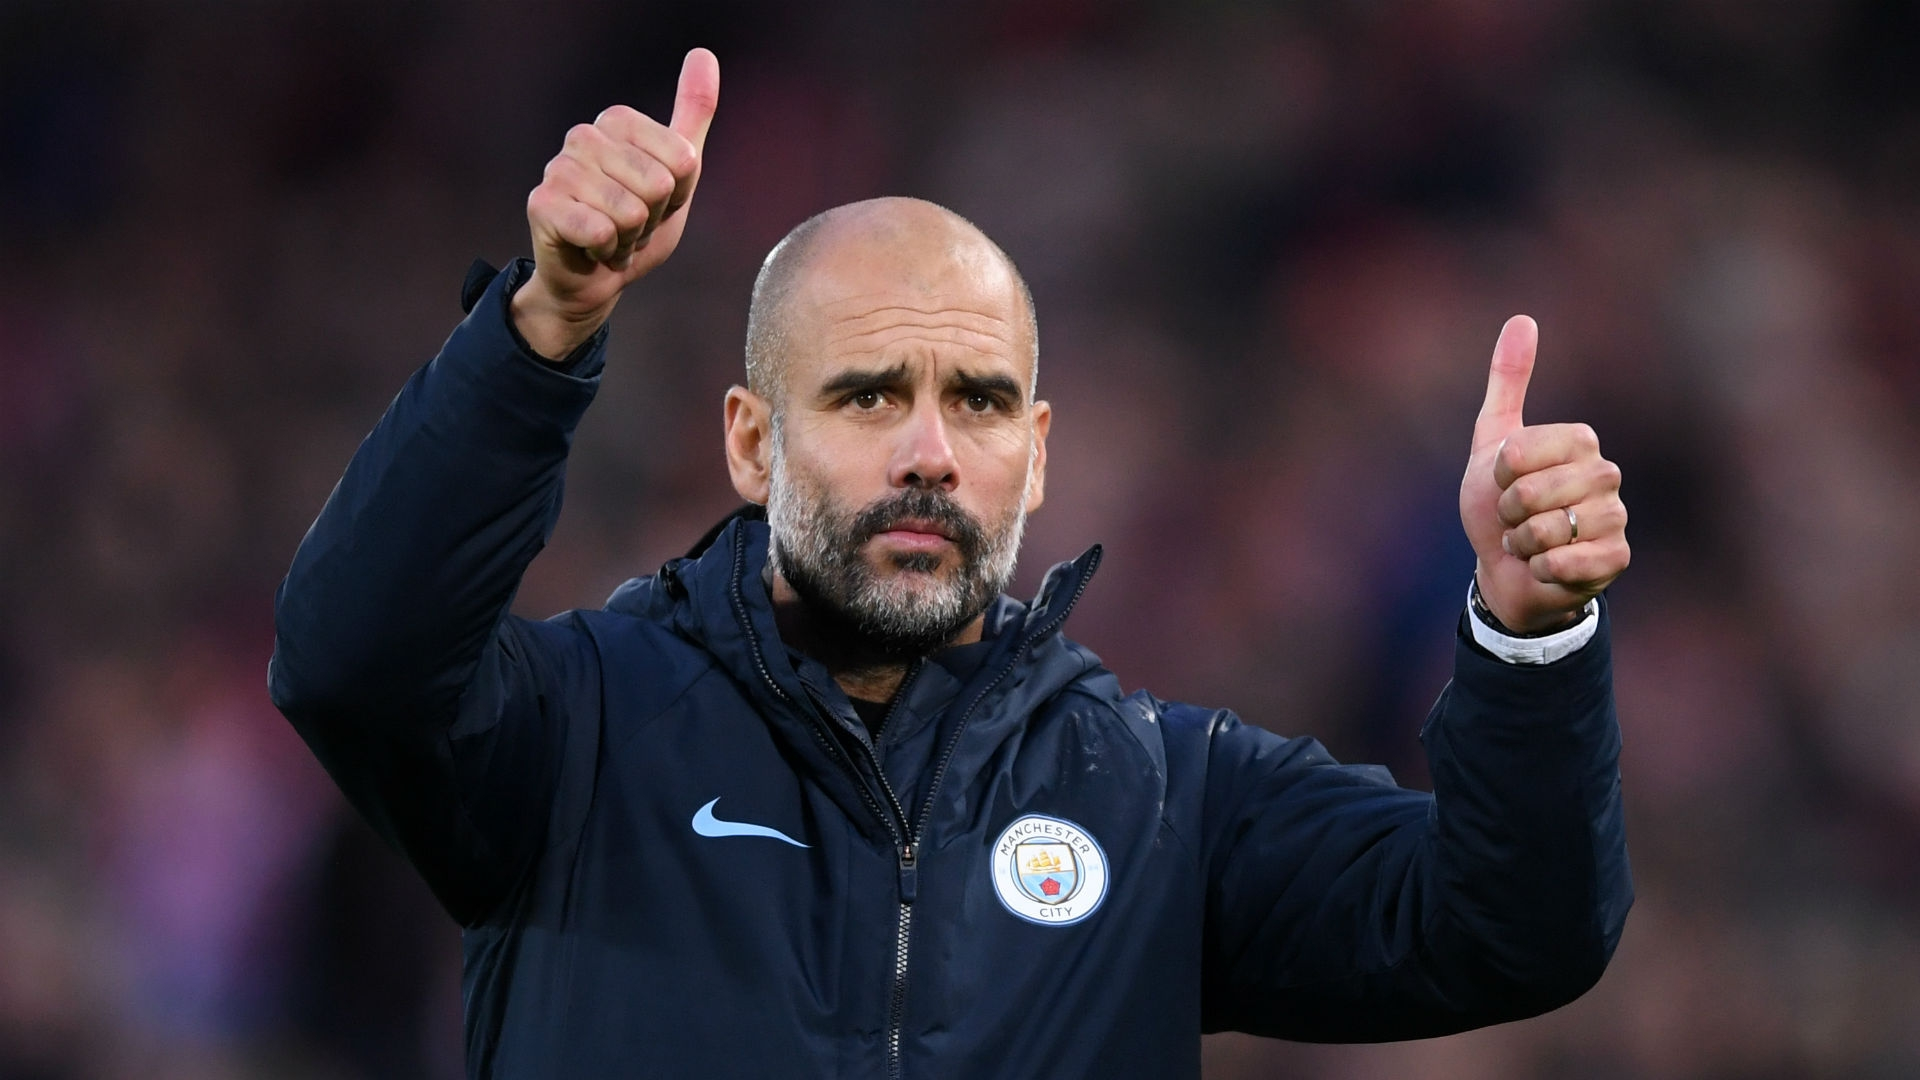 Pep Guardiola expecting Manchester City to bring their A game - Bóng Đá